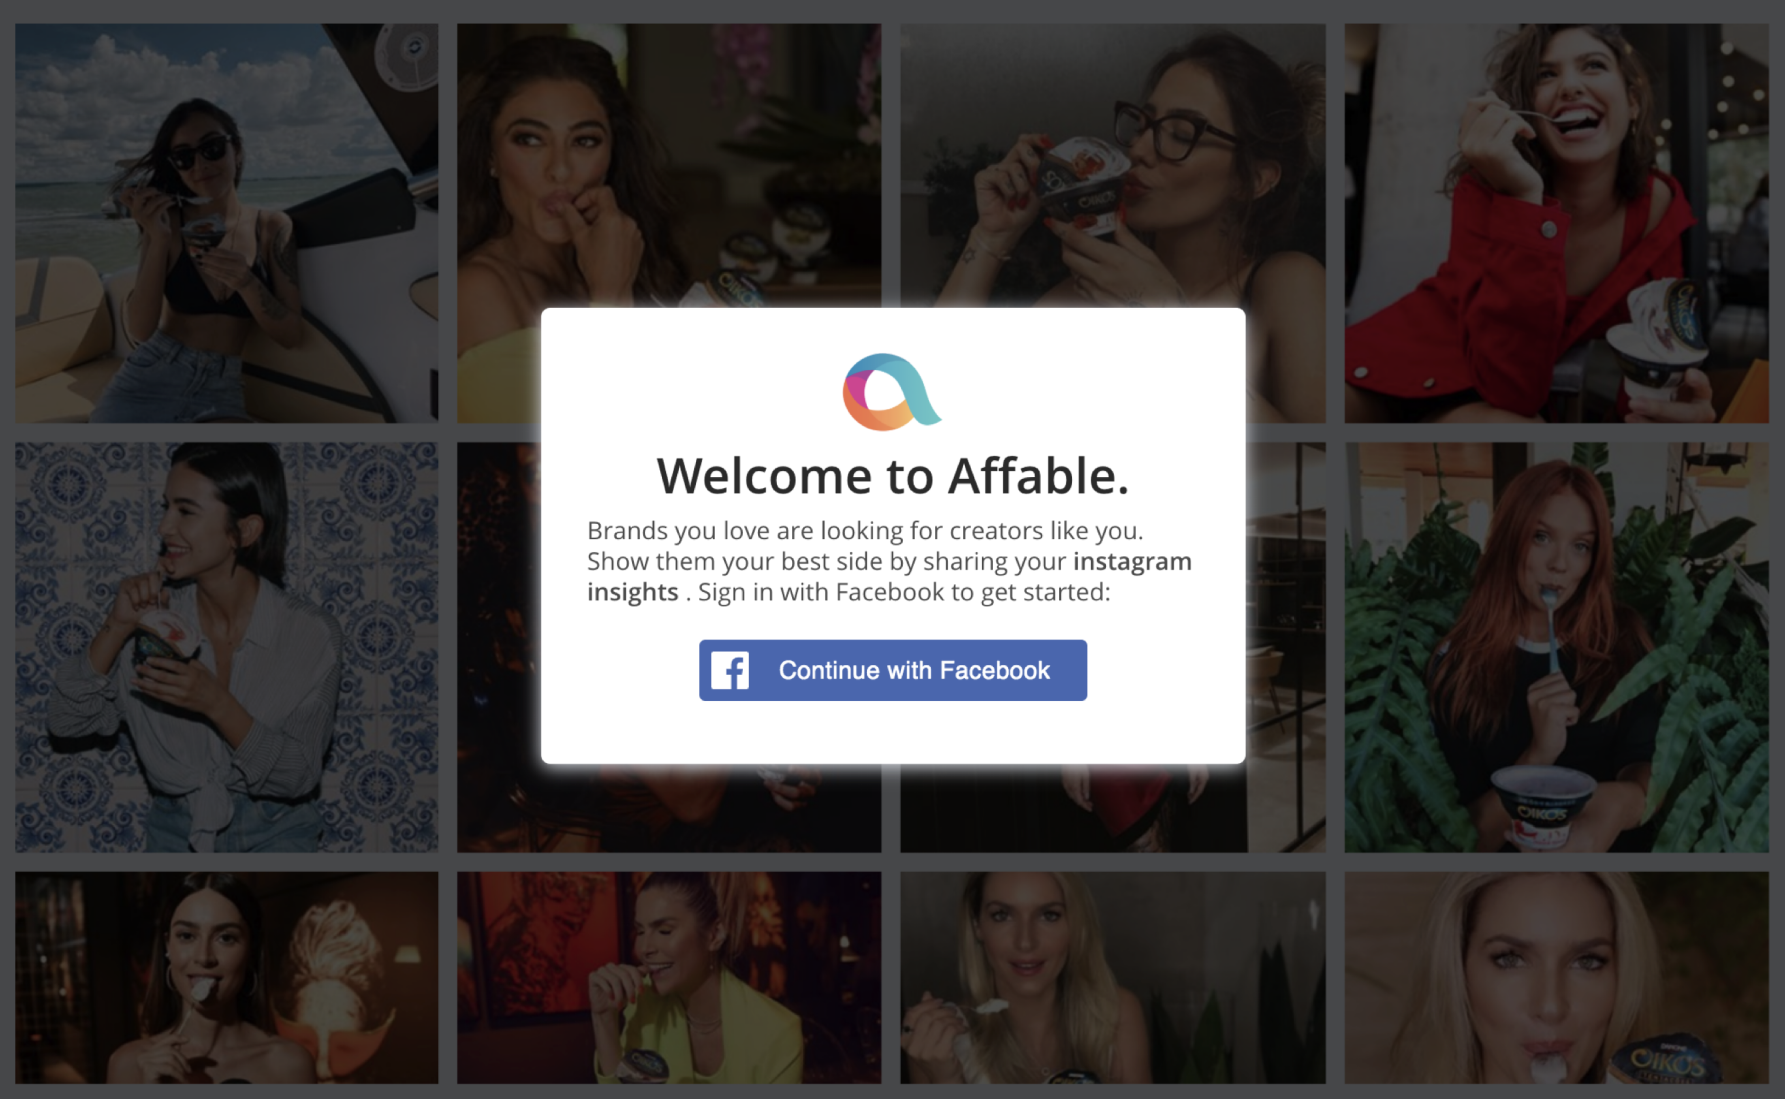 Affable Influencer Marketing Platform helps you collect influencer's business insights